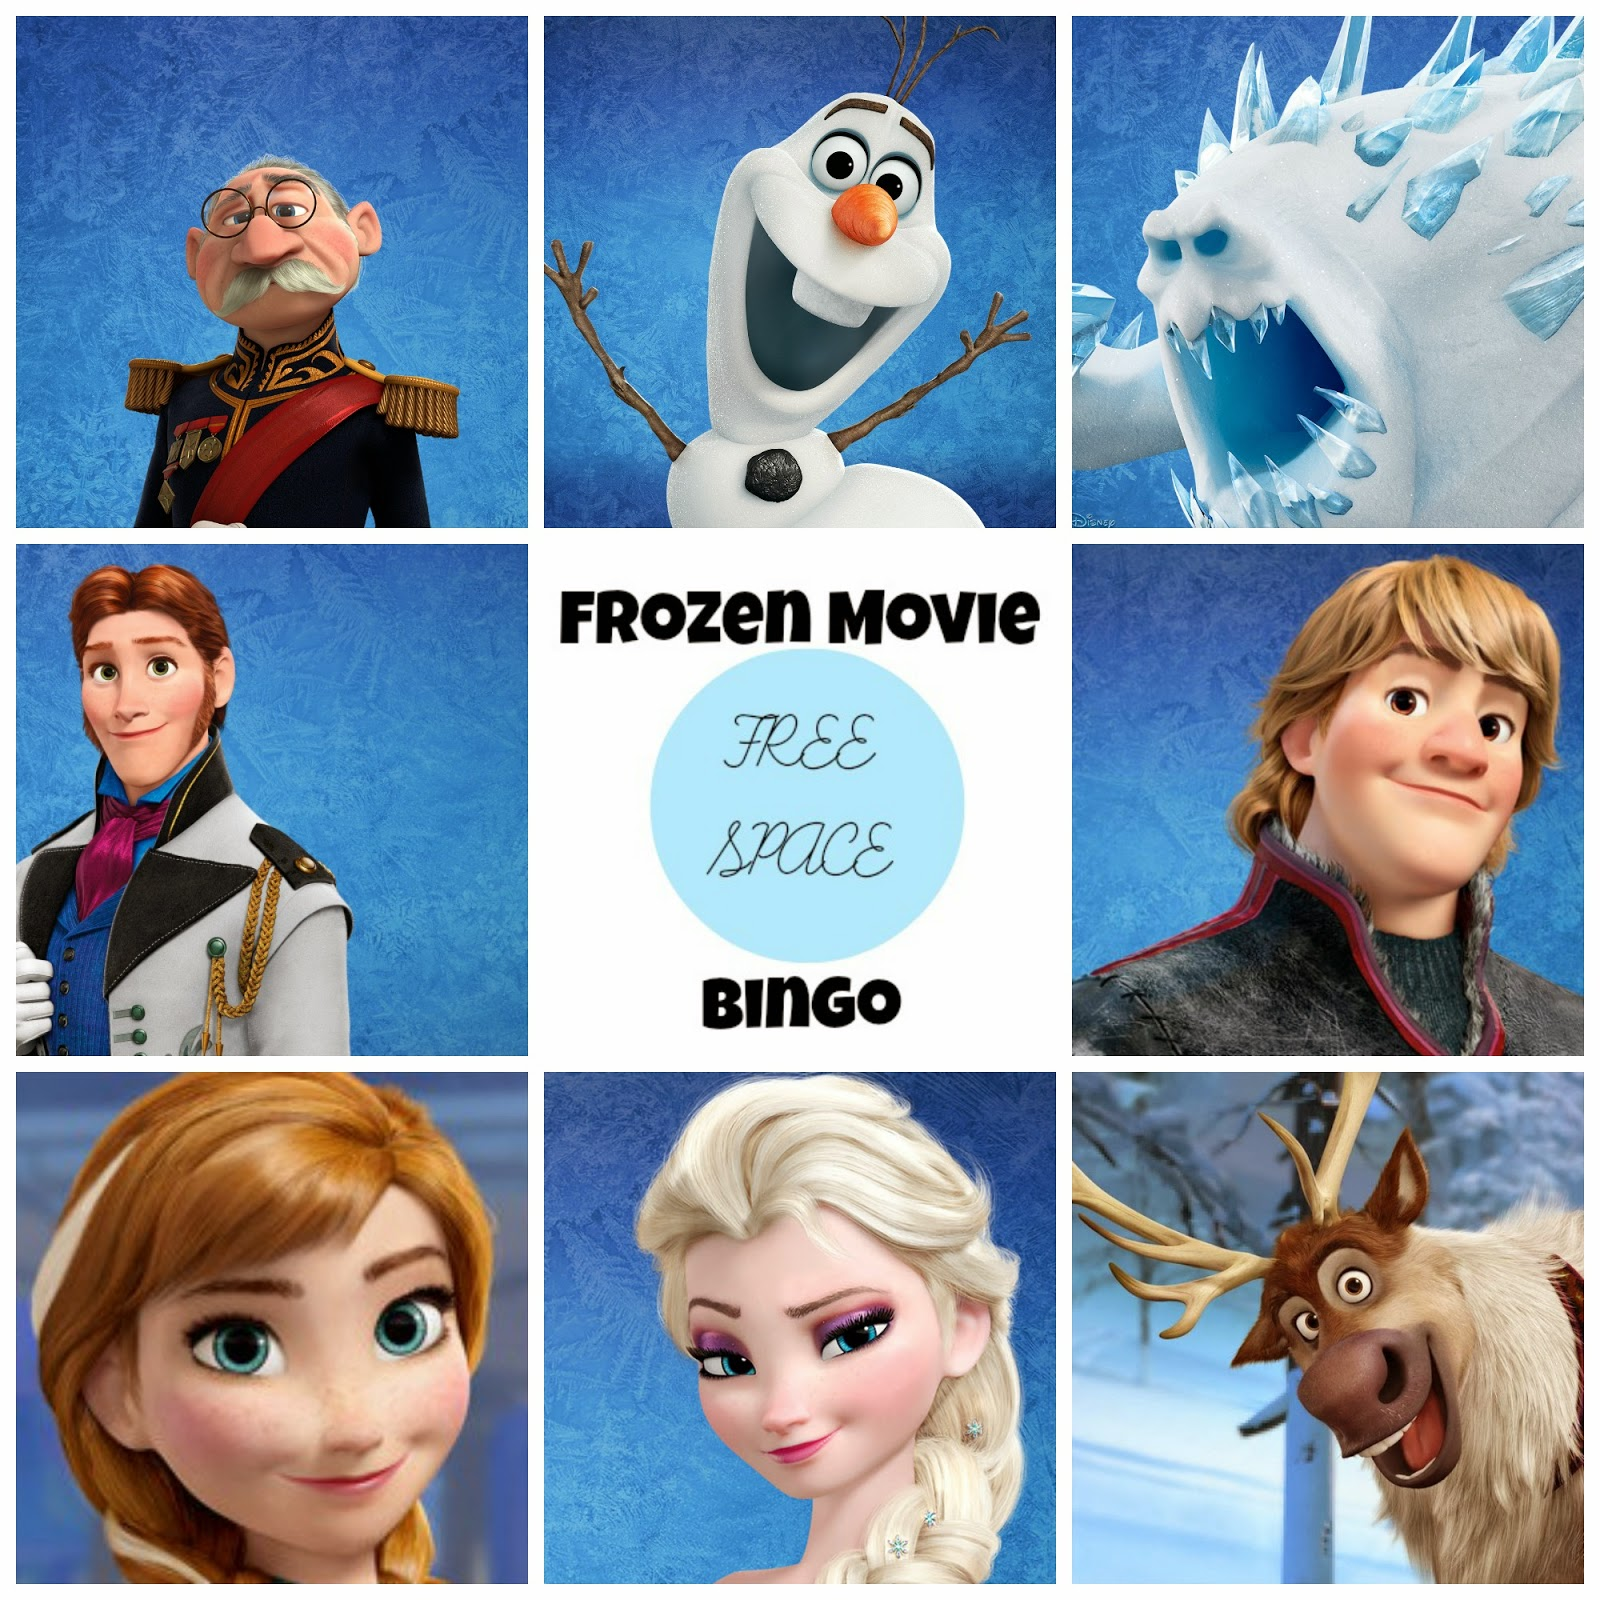 Frozen Free Printable Bingo. | Oh My Fiesta! in english